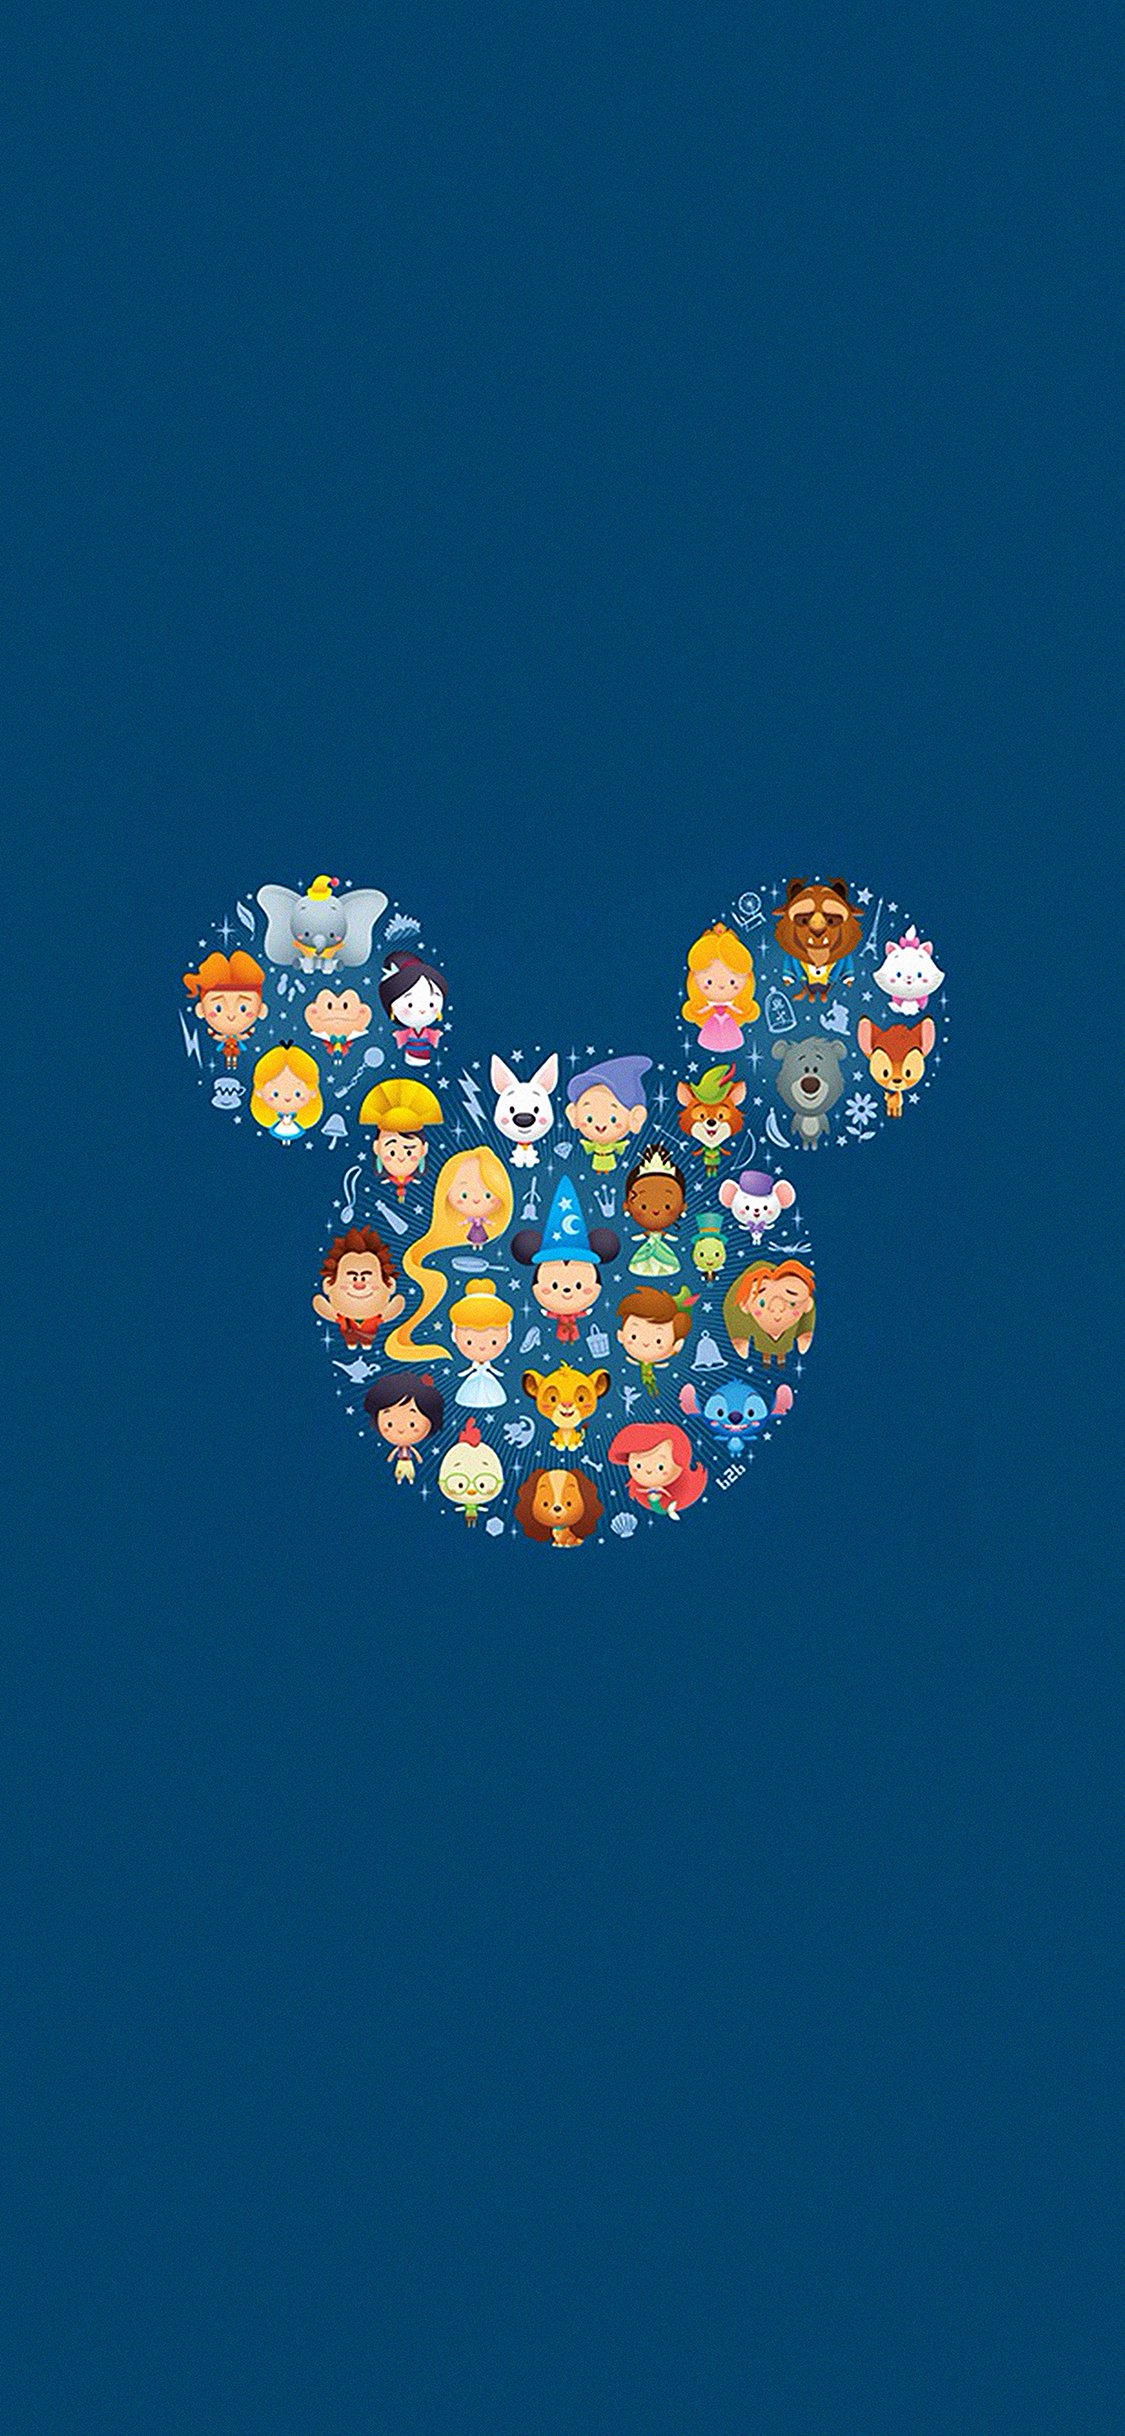 Disney Art Character Cute Iphone X Wallpapers Free Download